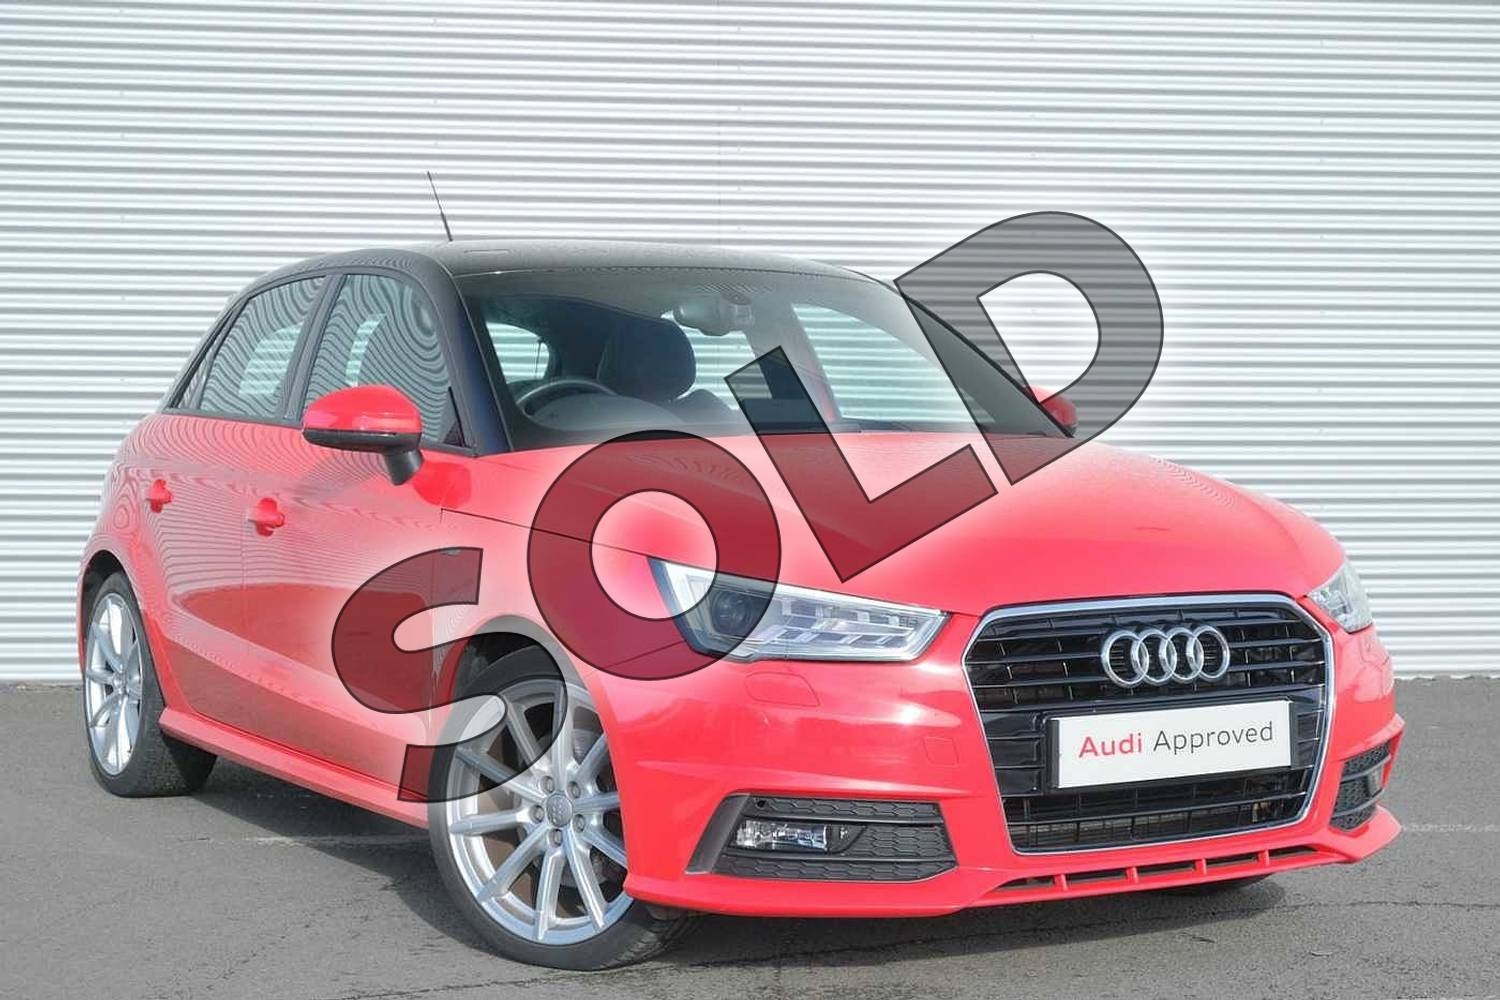 2015 Audi A1 Diesel Sportback 1.6 TDI S Line 5dr in Misano Red, pearl effect at Coventry Audi